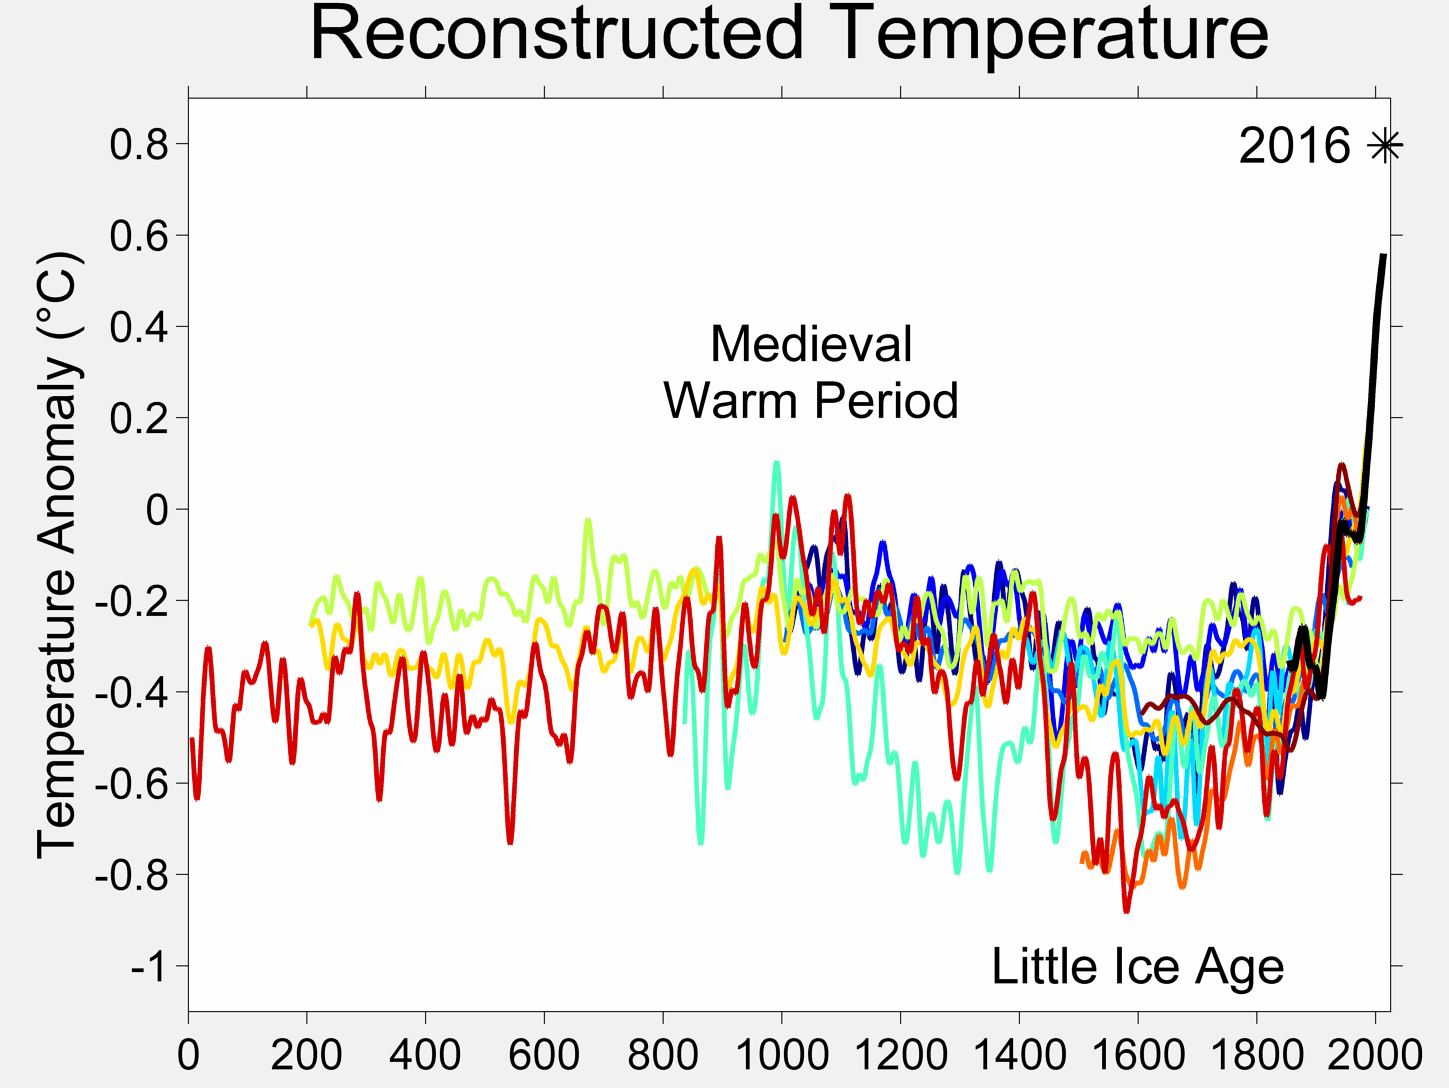 Temperatures in the past 2000 years